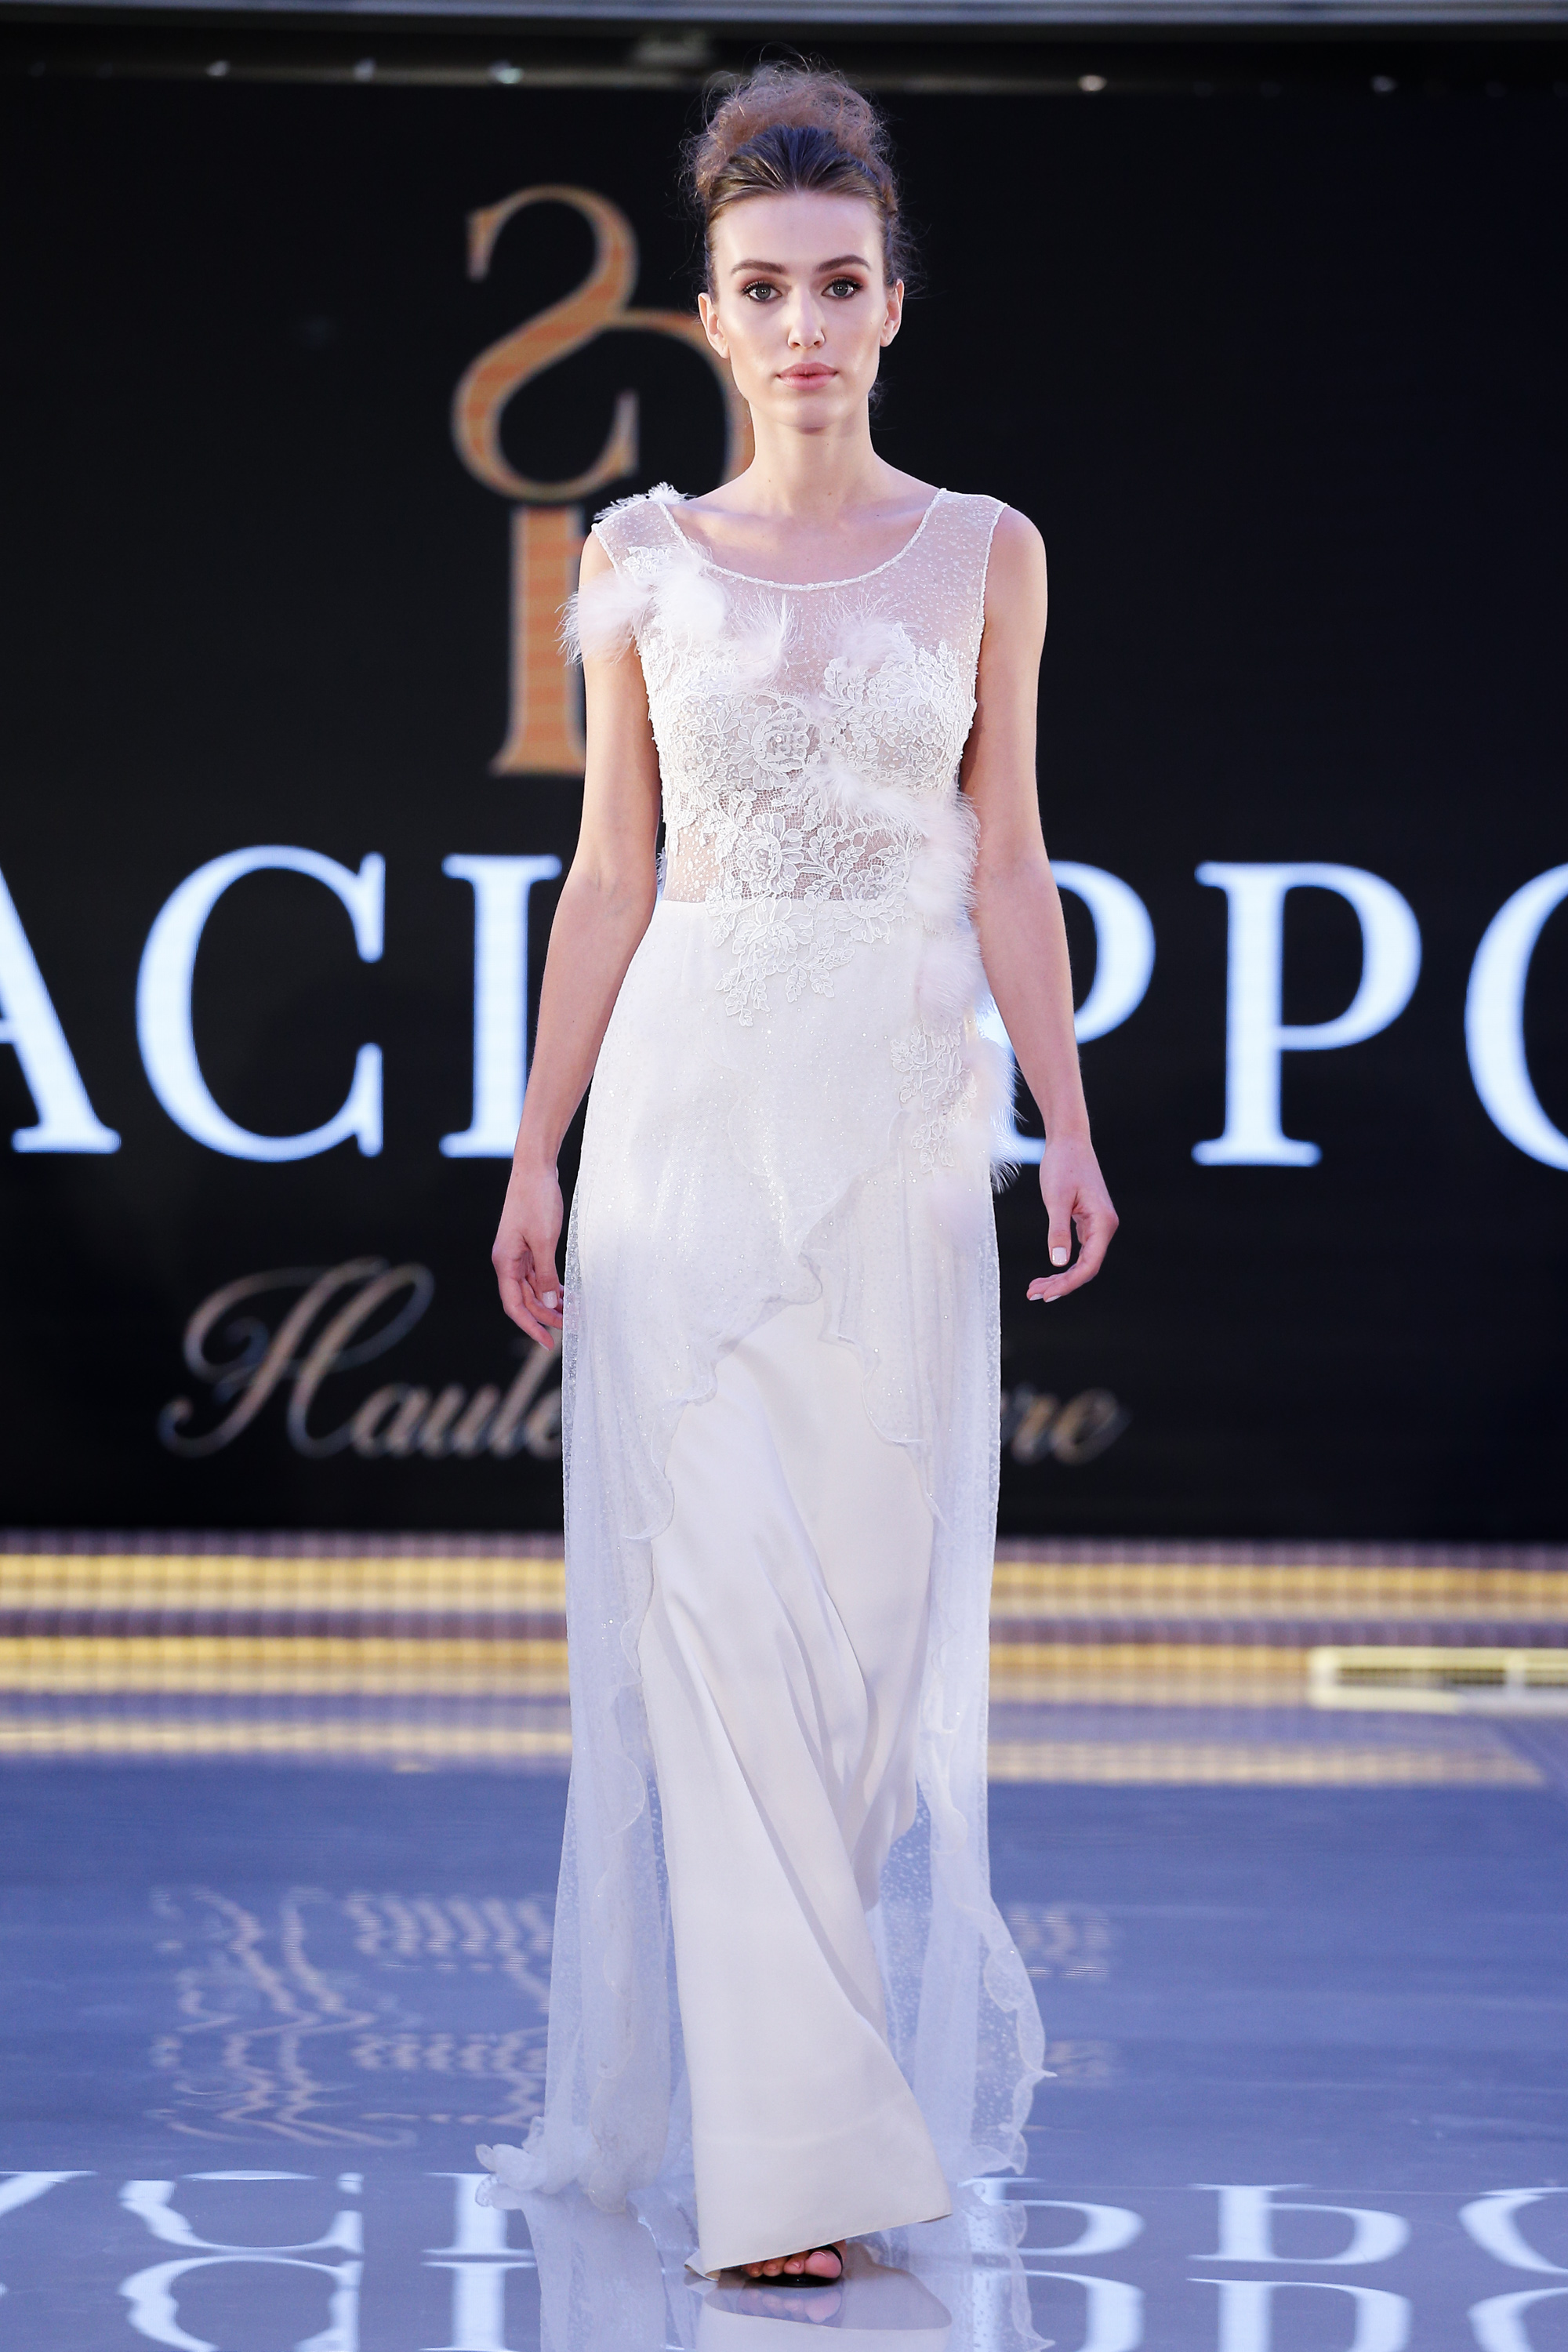 Simone Racioppo Ready Couture Fall Winter 2018 Collection Dubai Fashion Week